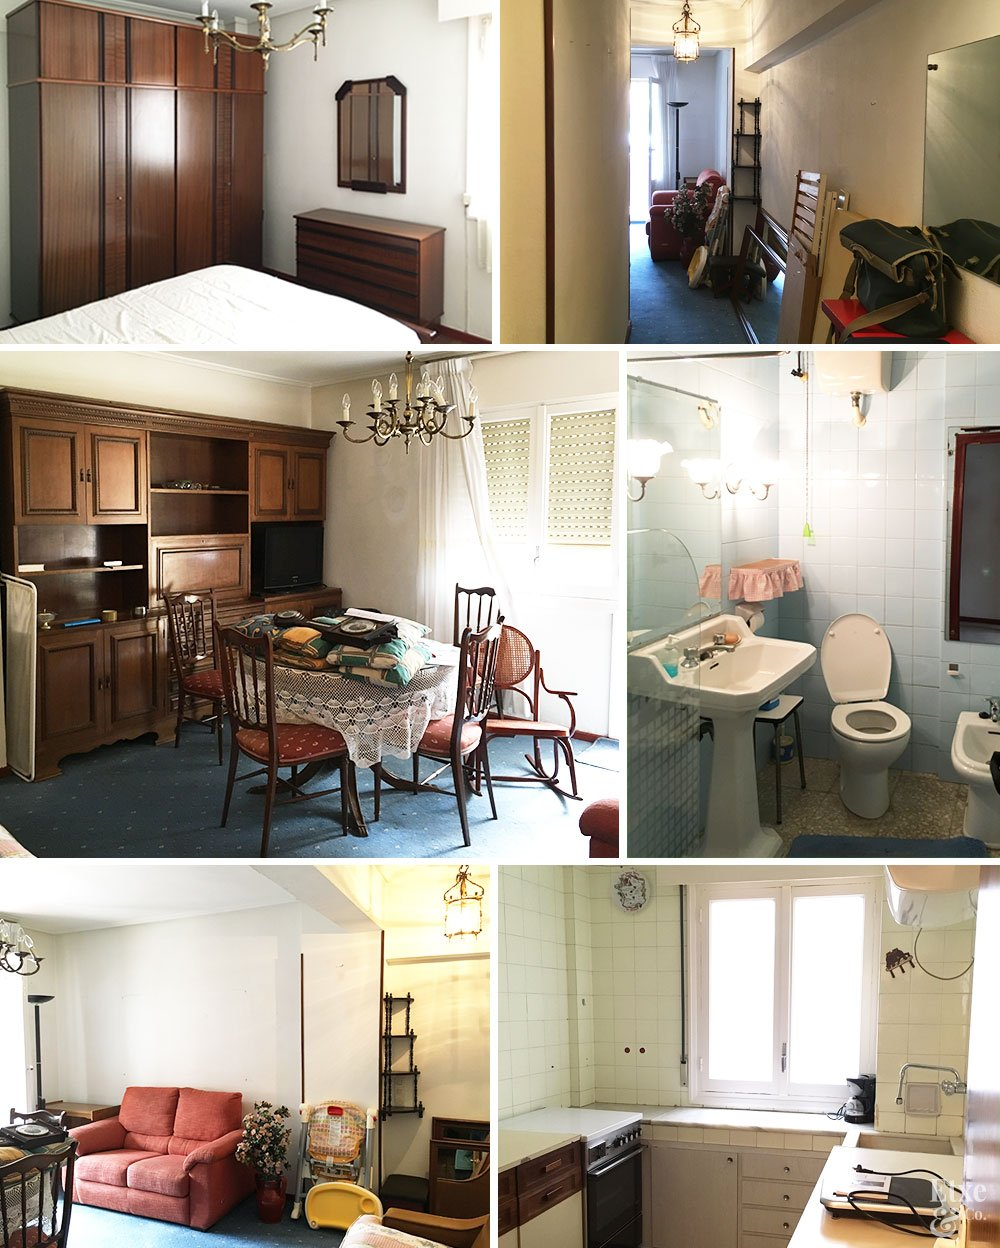 Collage de fotos del estado actual de la casa en Moncada, Bilbao.